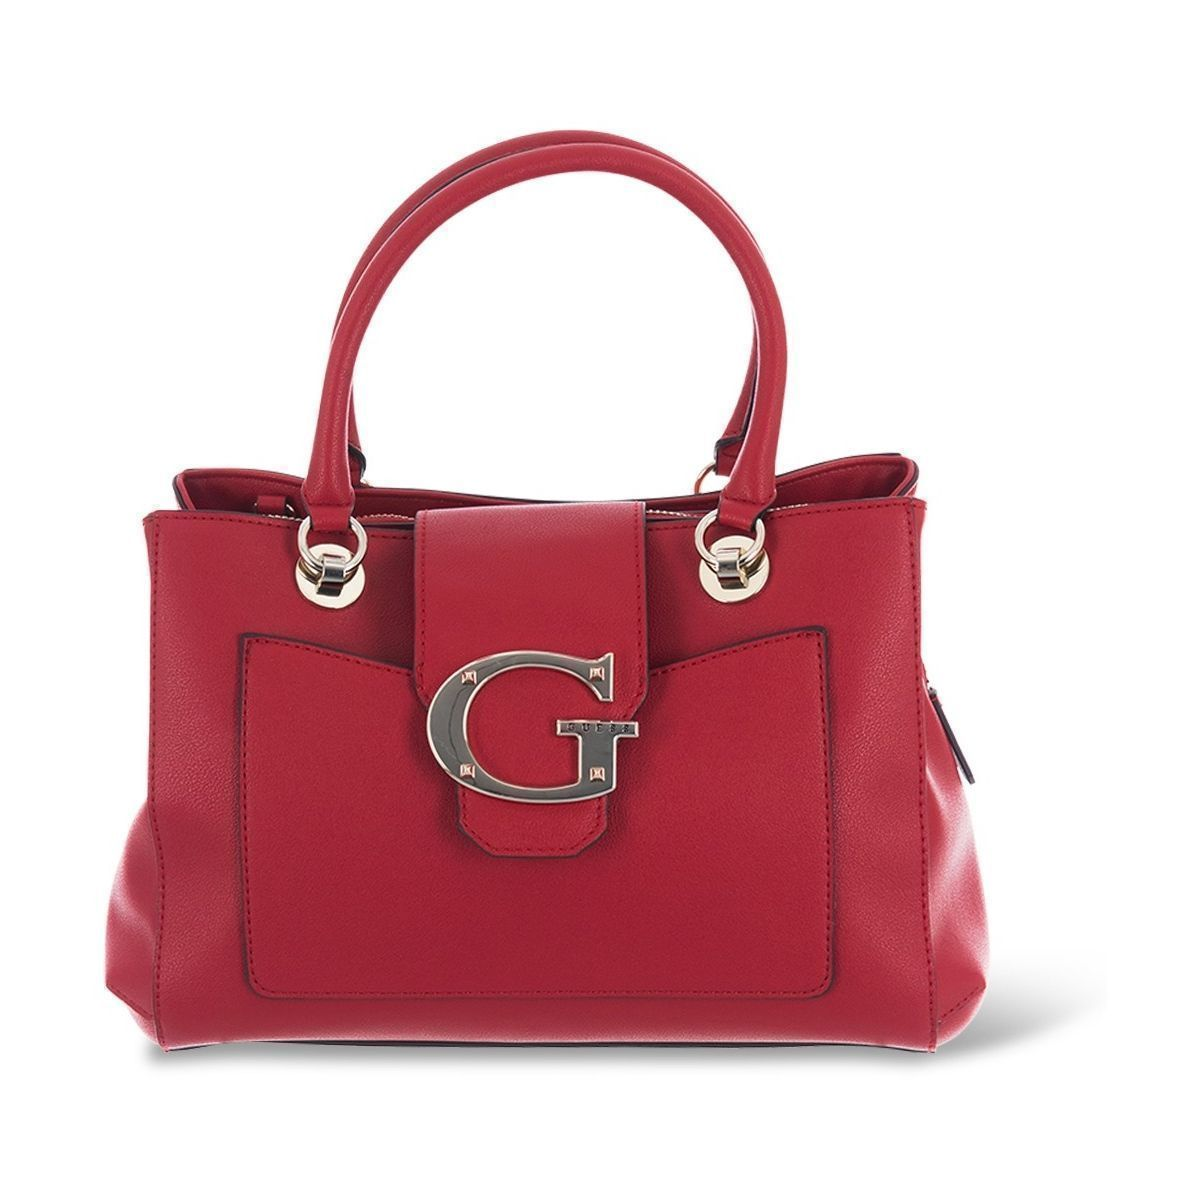 FARTY FUNK CAMILA GIRLFRIEND SATCHEL:ROUGE/POLYURETHANE/POLYESTER//Rouge